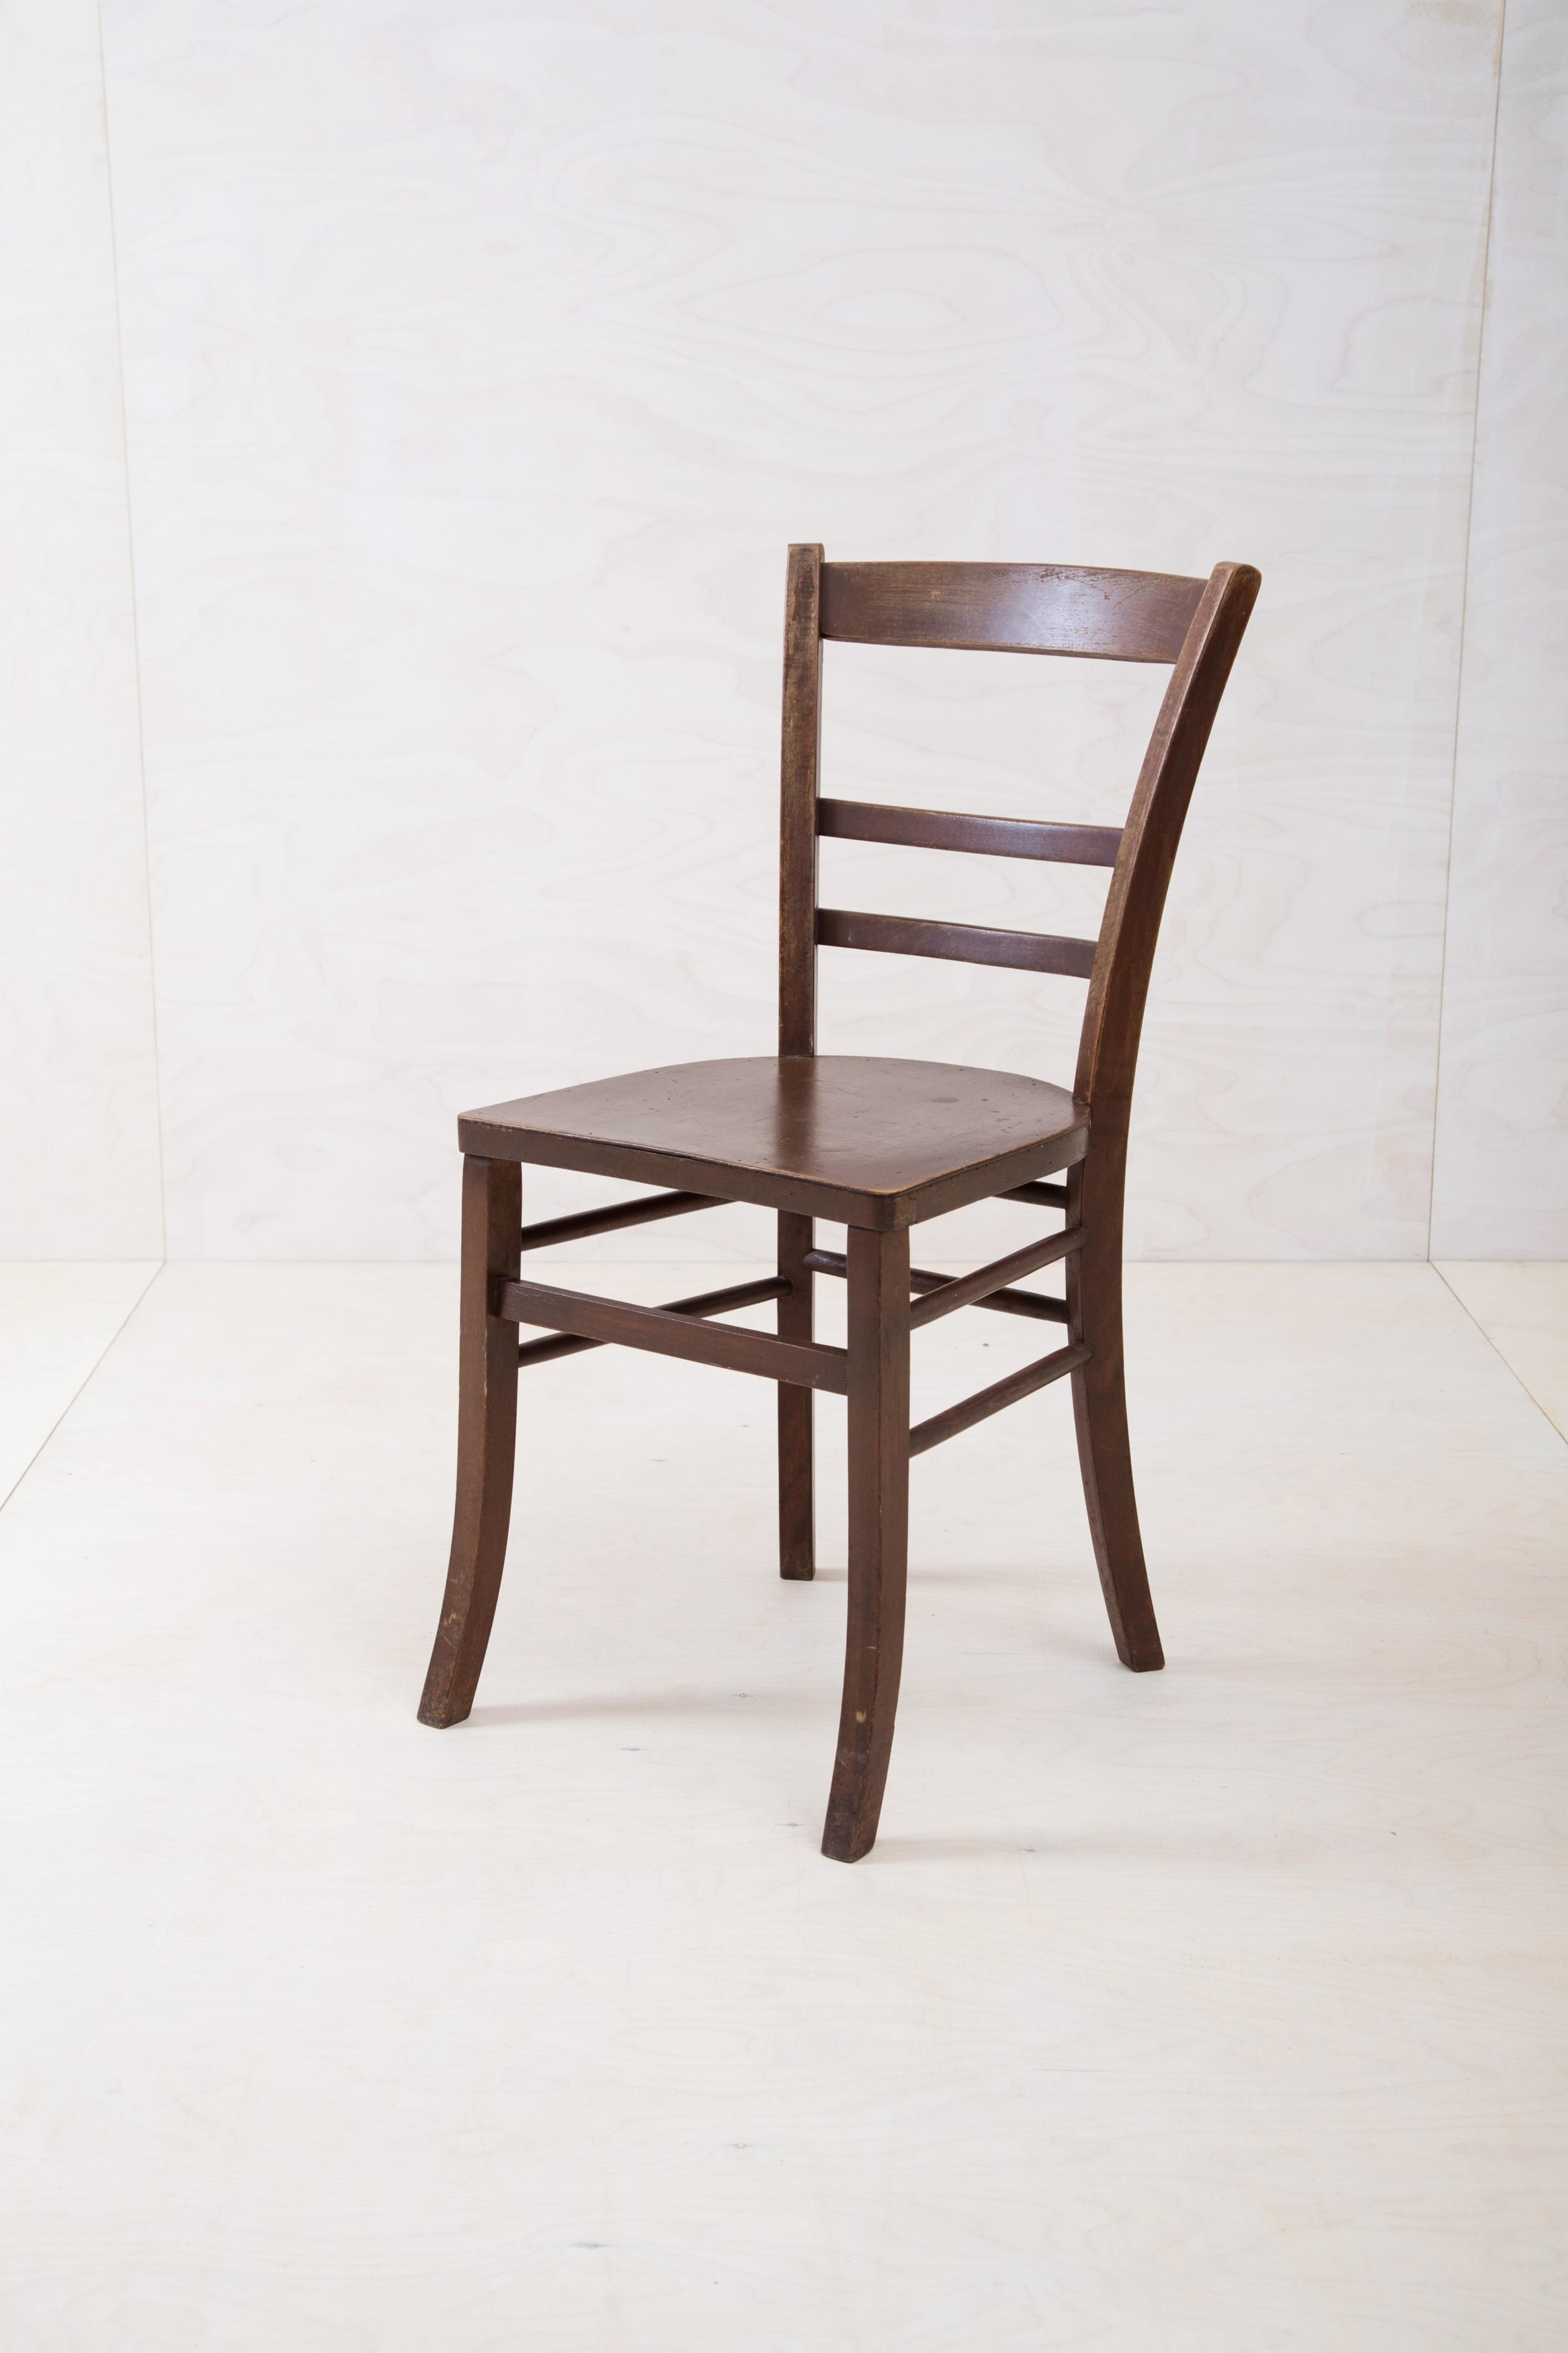 wooden chairs for rent, brown, wood in Berlin